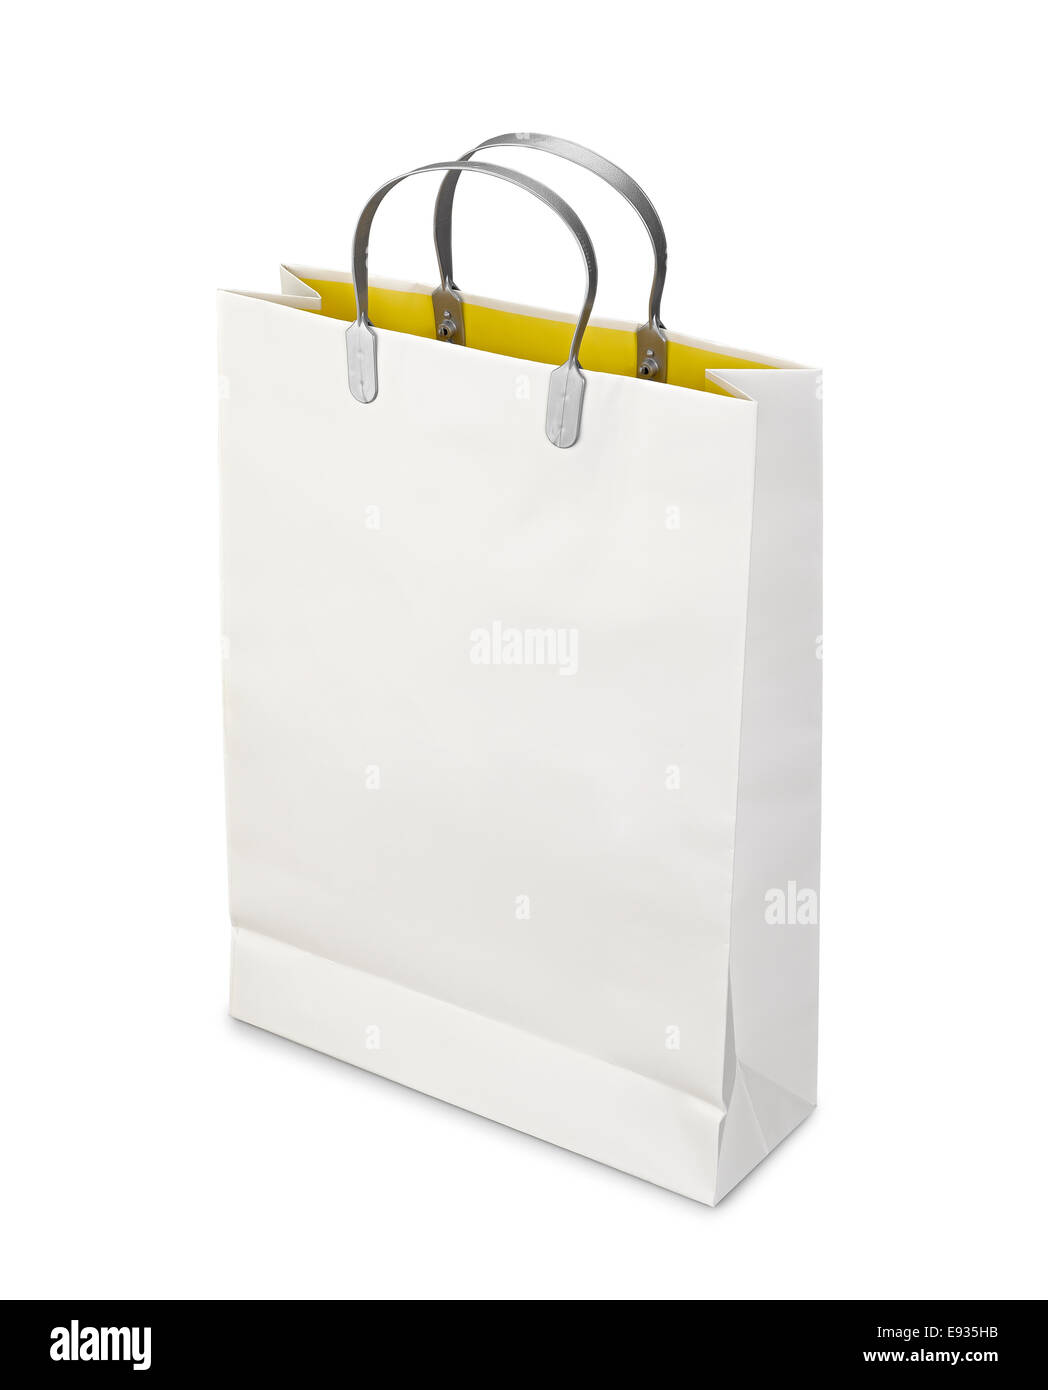 60b9e980eb Shopping Bag opened isolated on white with clipping path - Stock Image